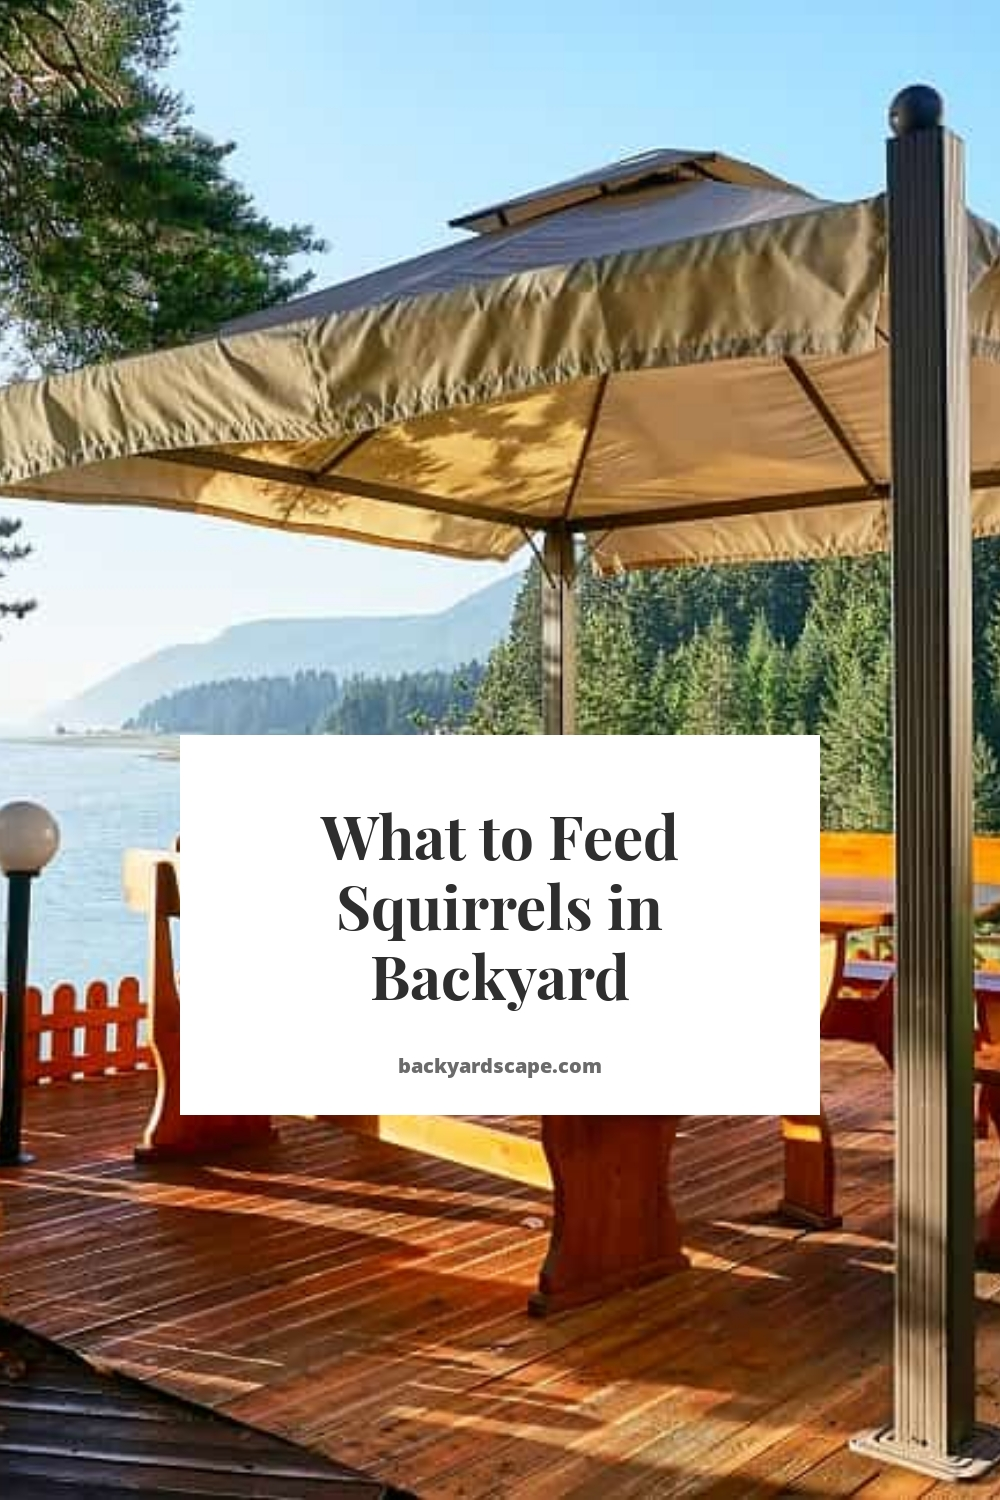 What to Feed Squirrels in Backyard